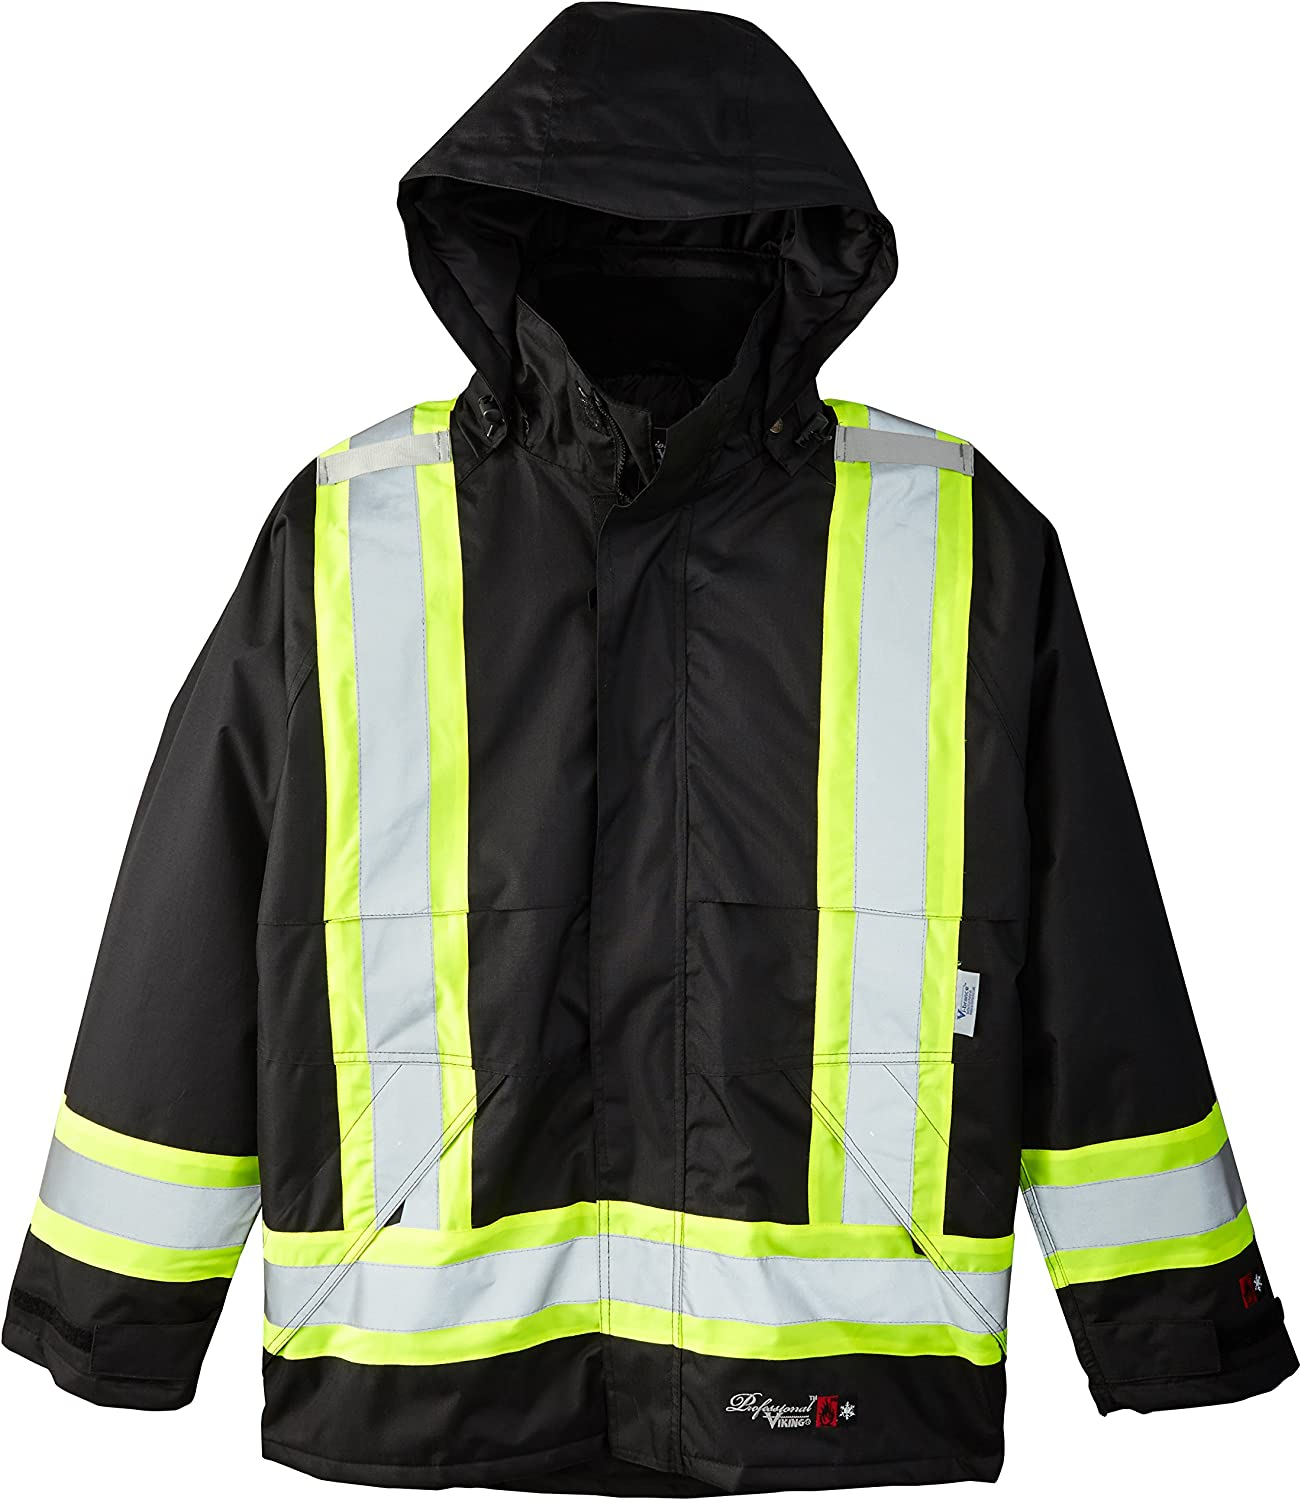 Medium Viking Professional Insulated Journeyman FR Waterproof Flame Resistant Jacket Black